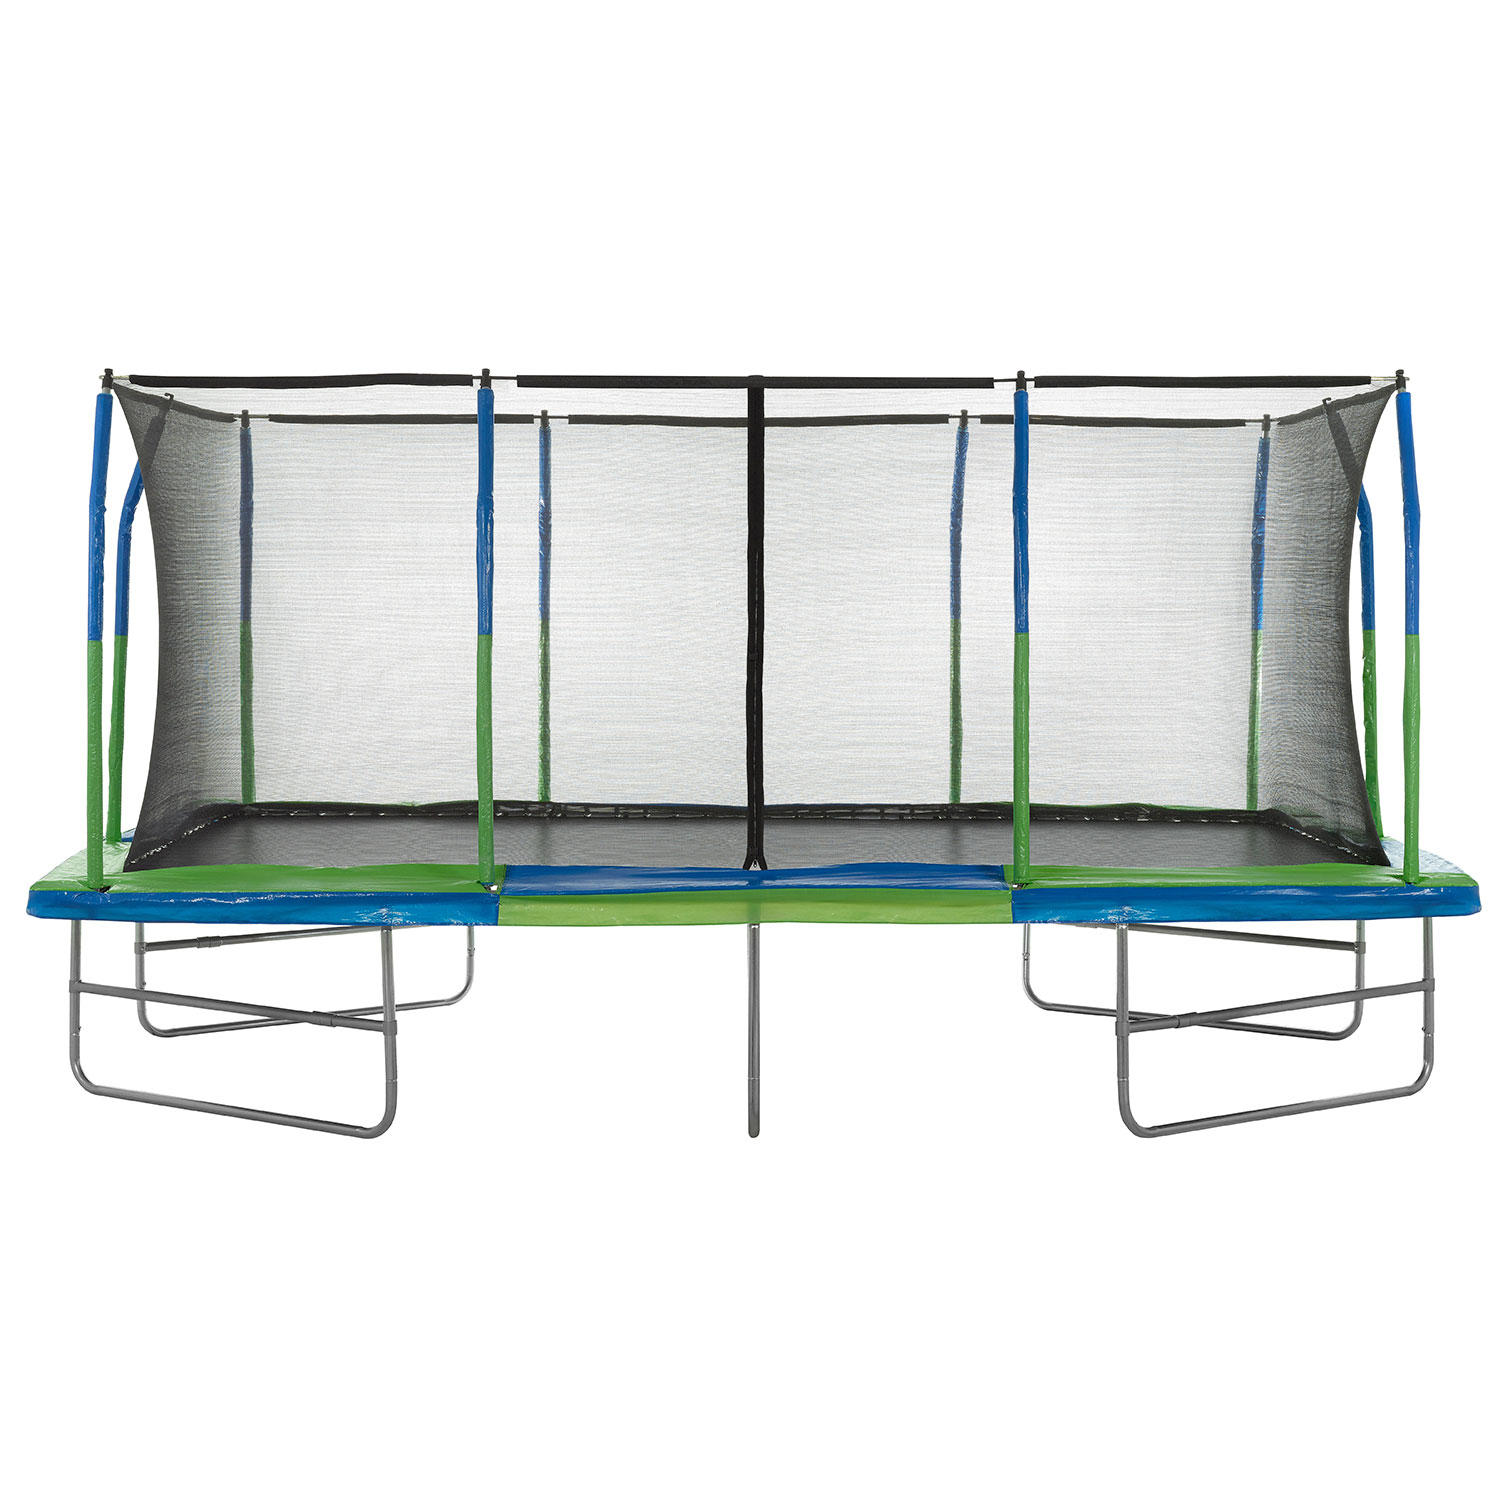 Upper Bounce Mega Trampoline with Fiber Flex Enclosure System